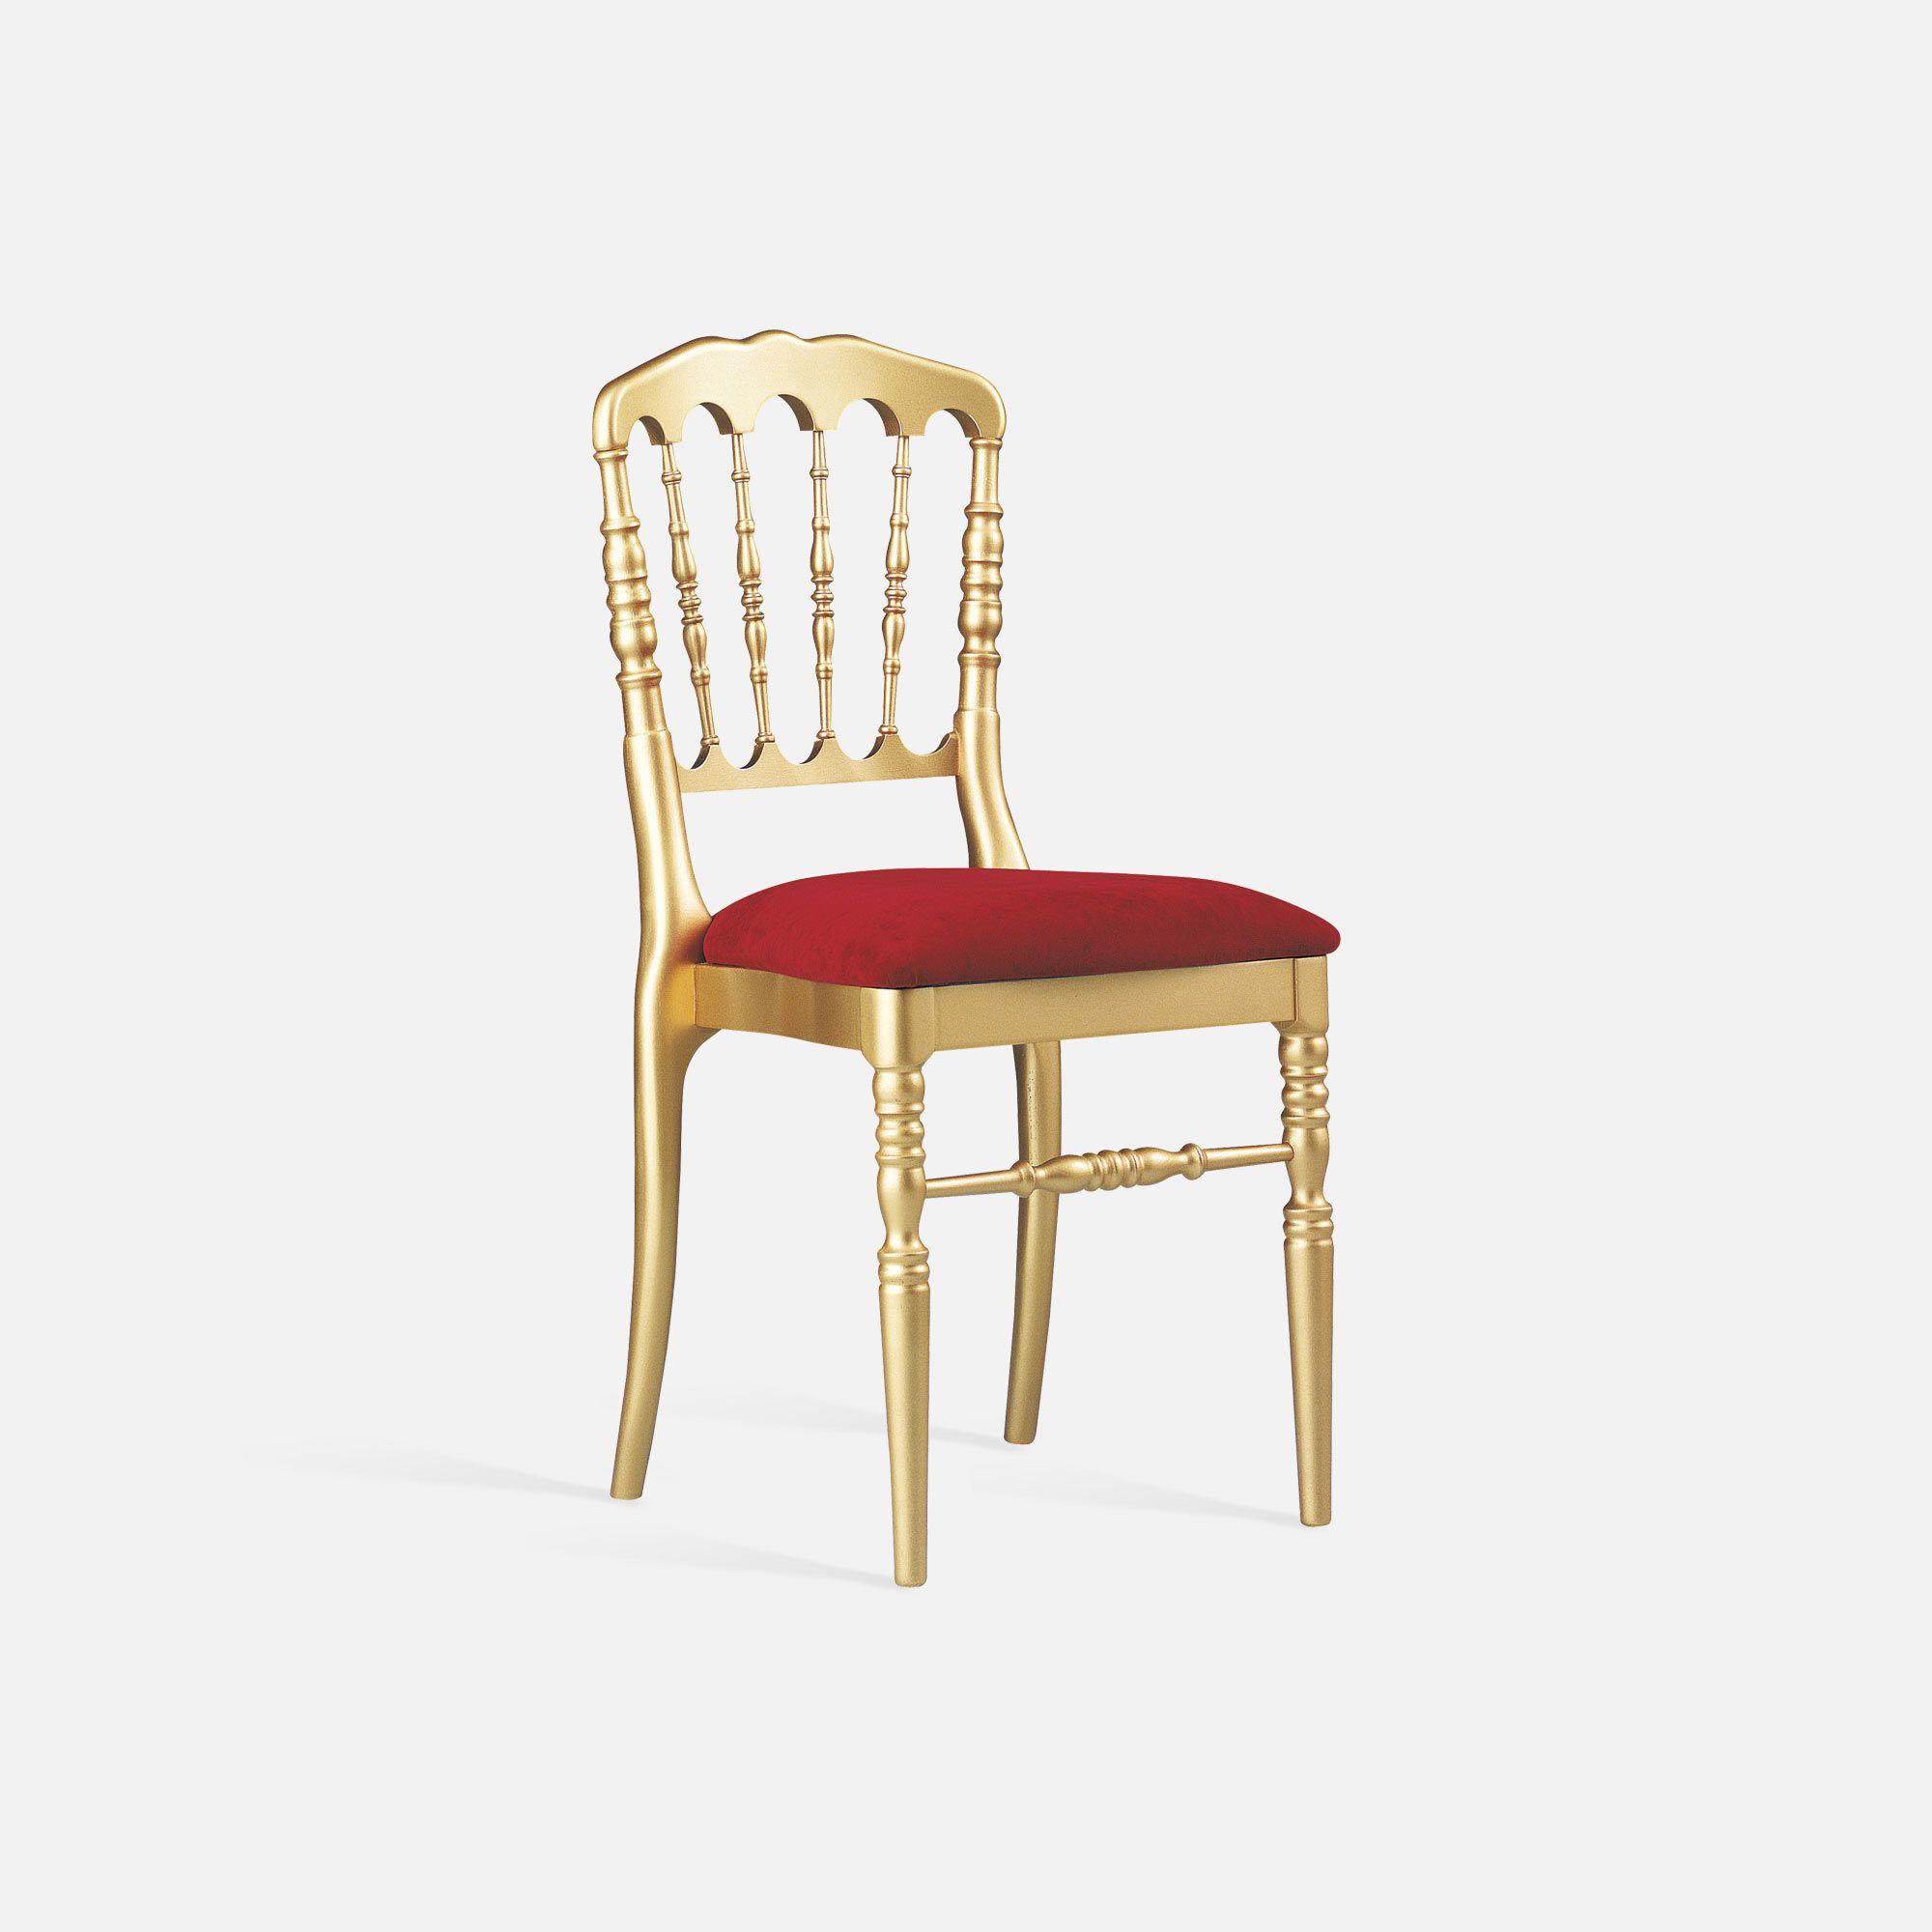 Chaise En Bois Repeinte meeting room chair for hotels: napoleon iii   collinet